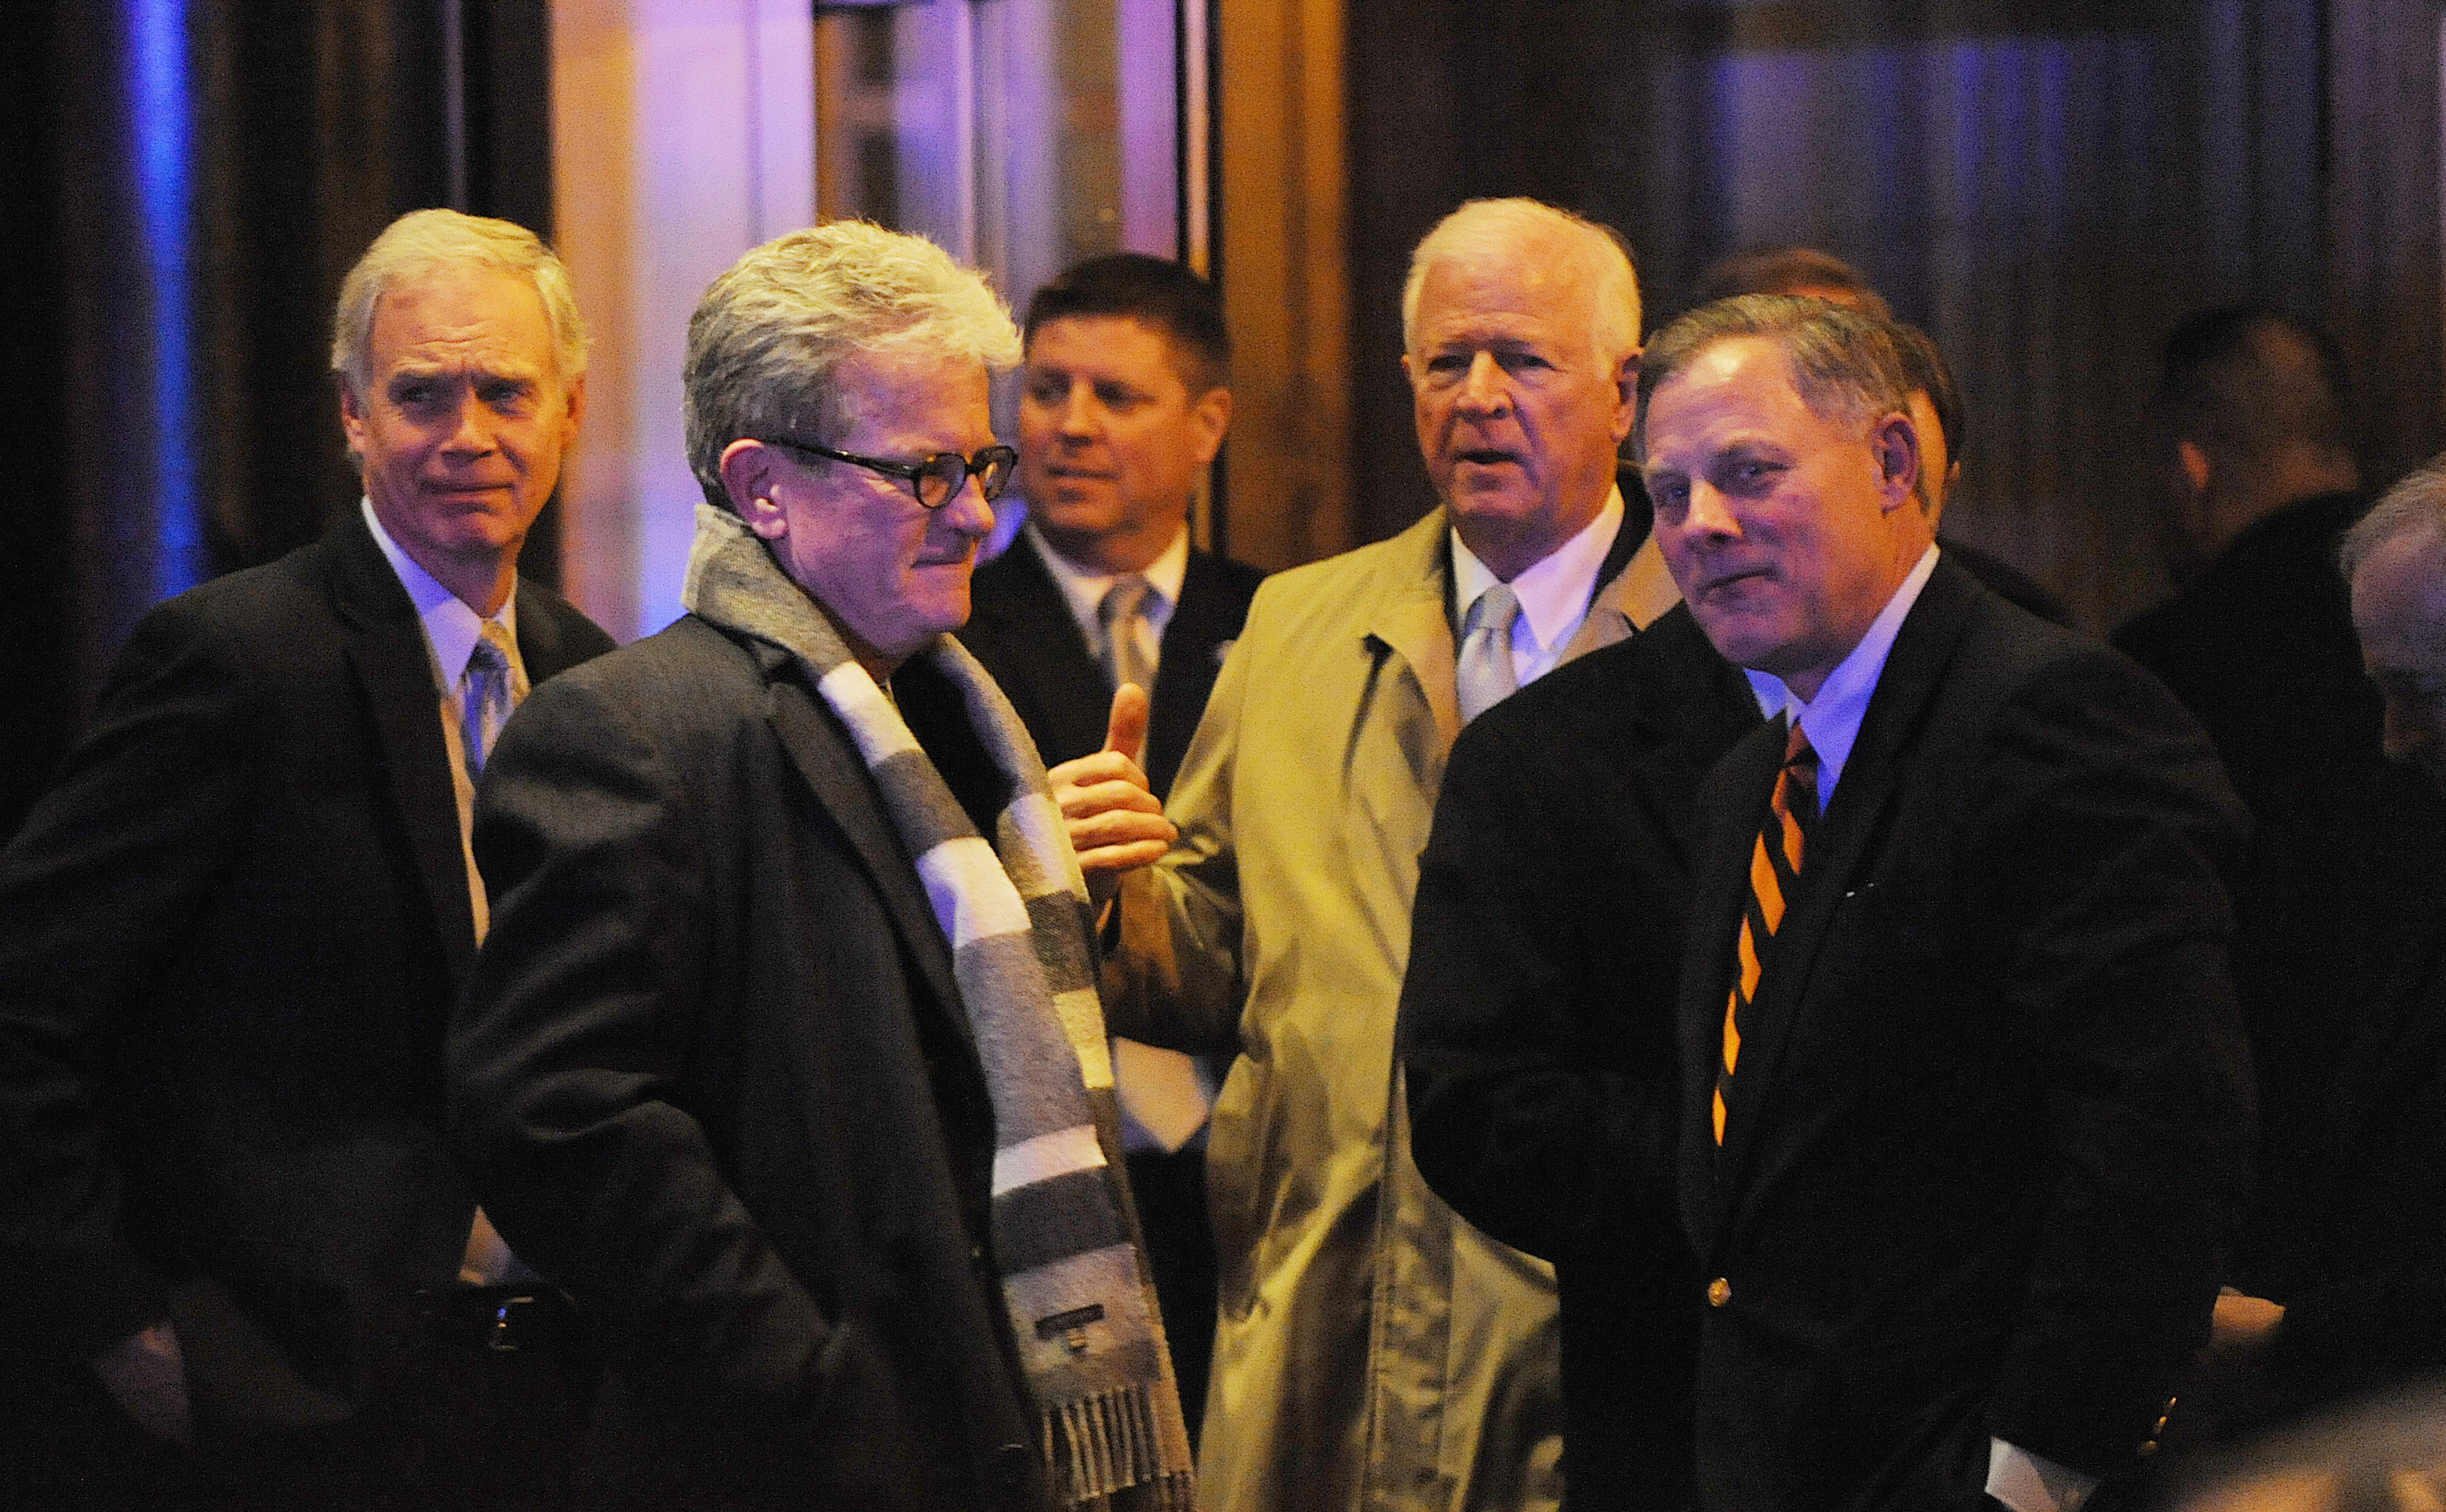 GOP senators, including Ron Johnson, Tom Coburn, Richard Burr and Saxby Chambliss, leave the Jefferson Hotel after dinner with the president on March 6, 2013. (AP/Olivier Douliery, Pool)